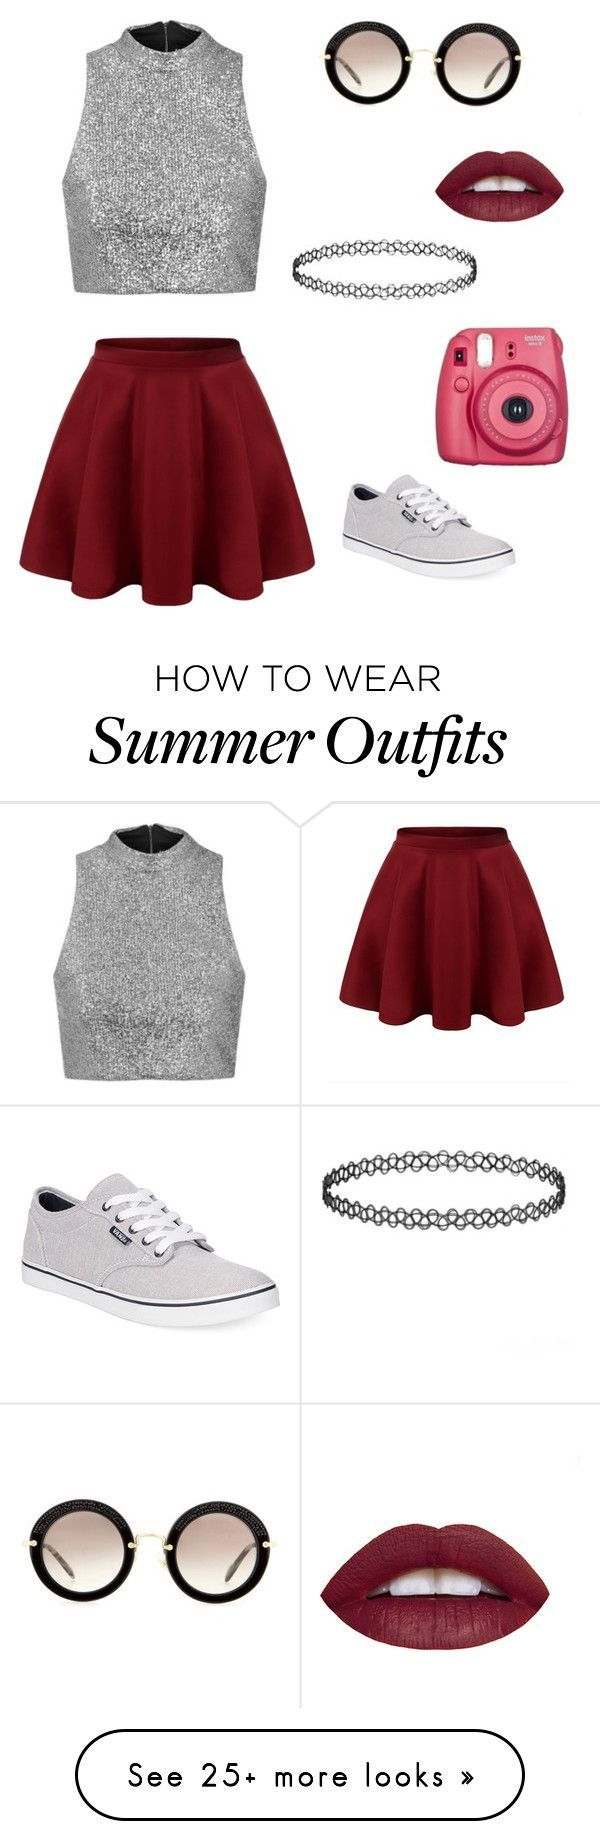 """A perfect outfit for a summer day. ❤"" by setmetrendy on Polyvore featuring Miu Miu, Topshop, Vans, women's clothing, women's fashion, women, female, woman, misses and juniors"